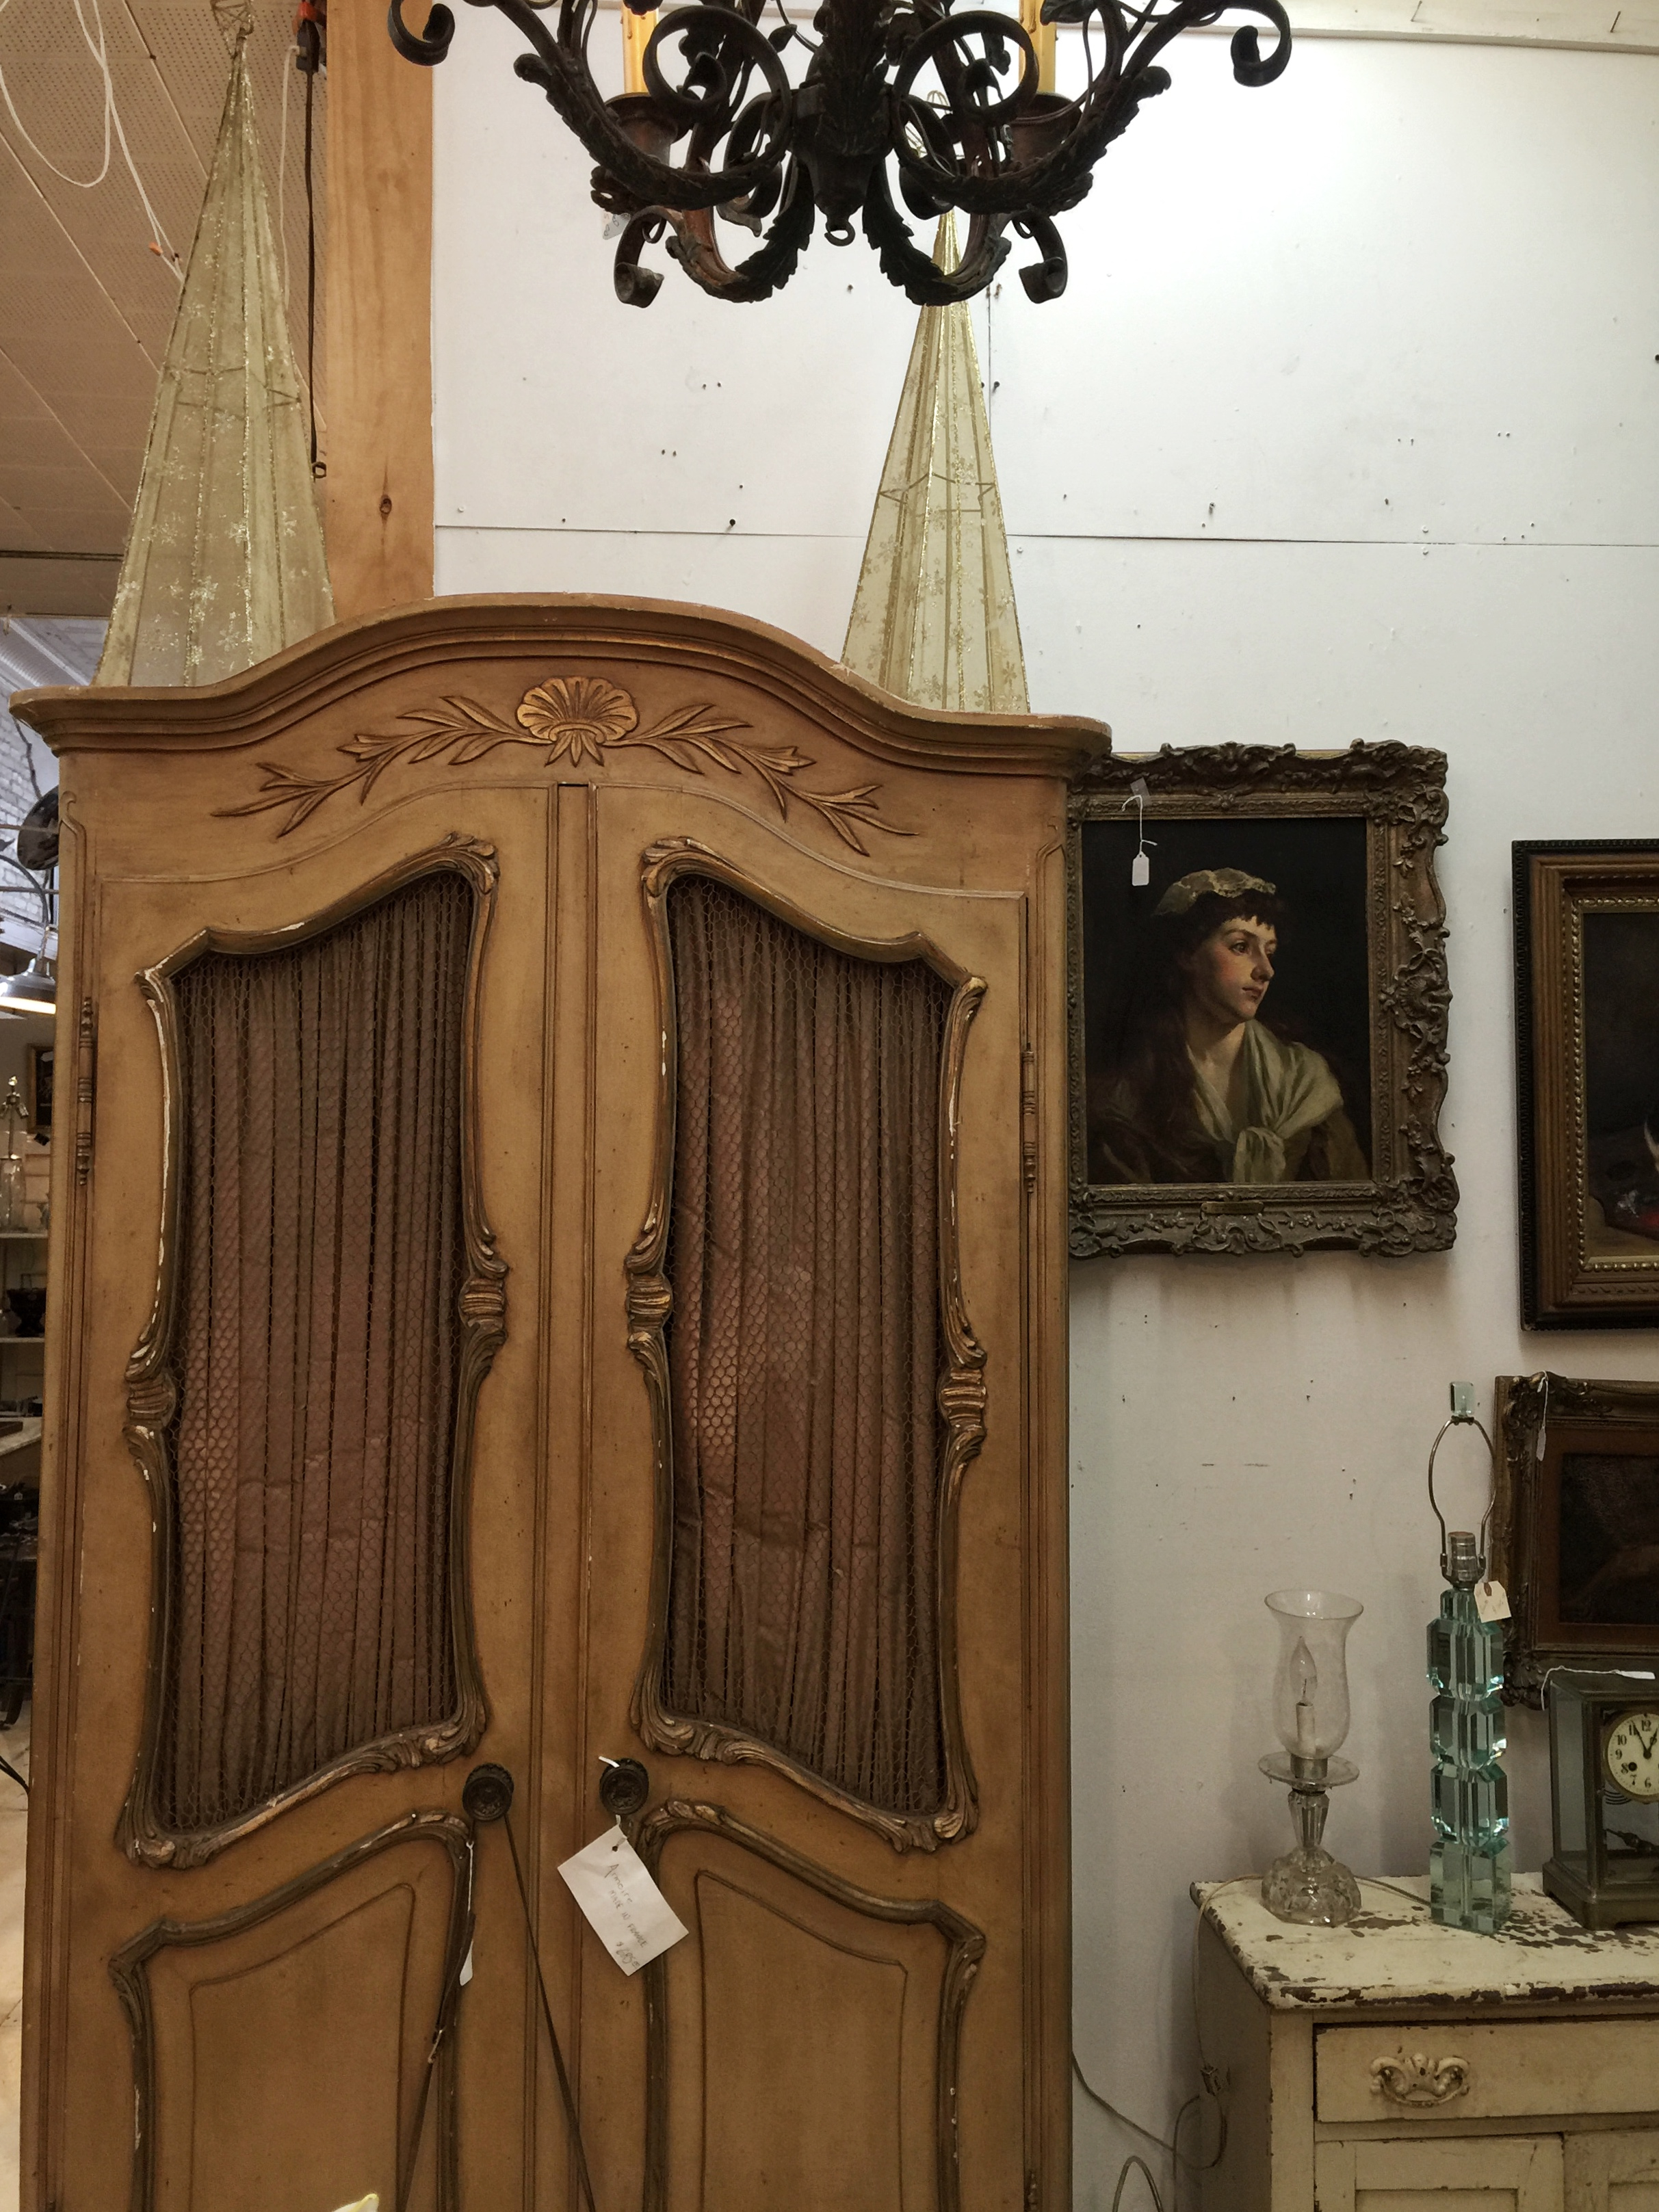 The eclectic offerings in Carousel Antique Center